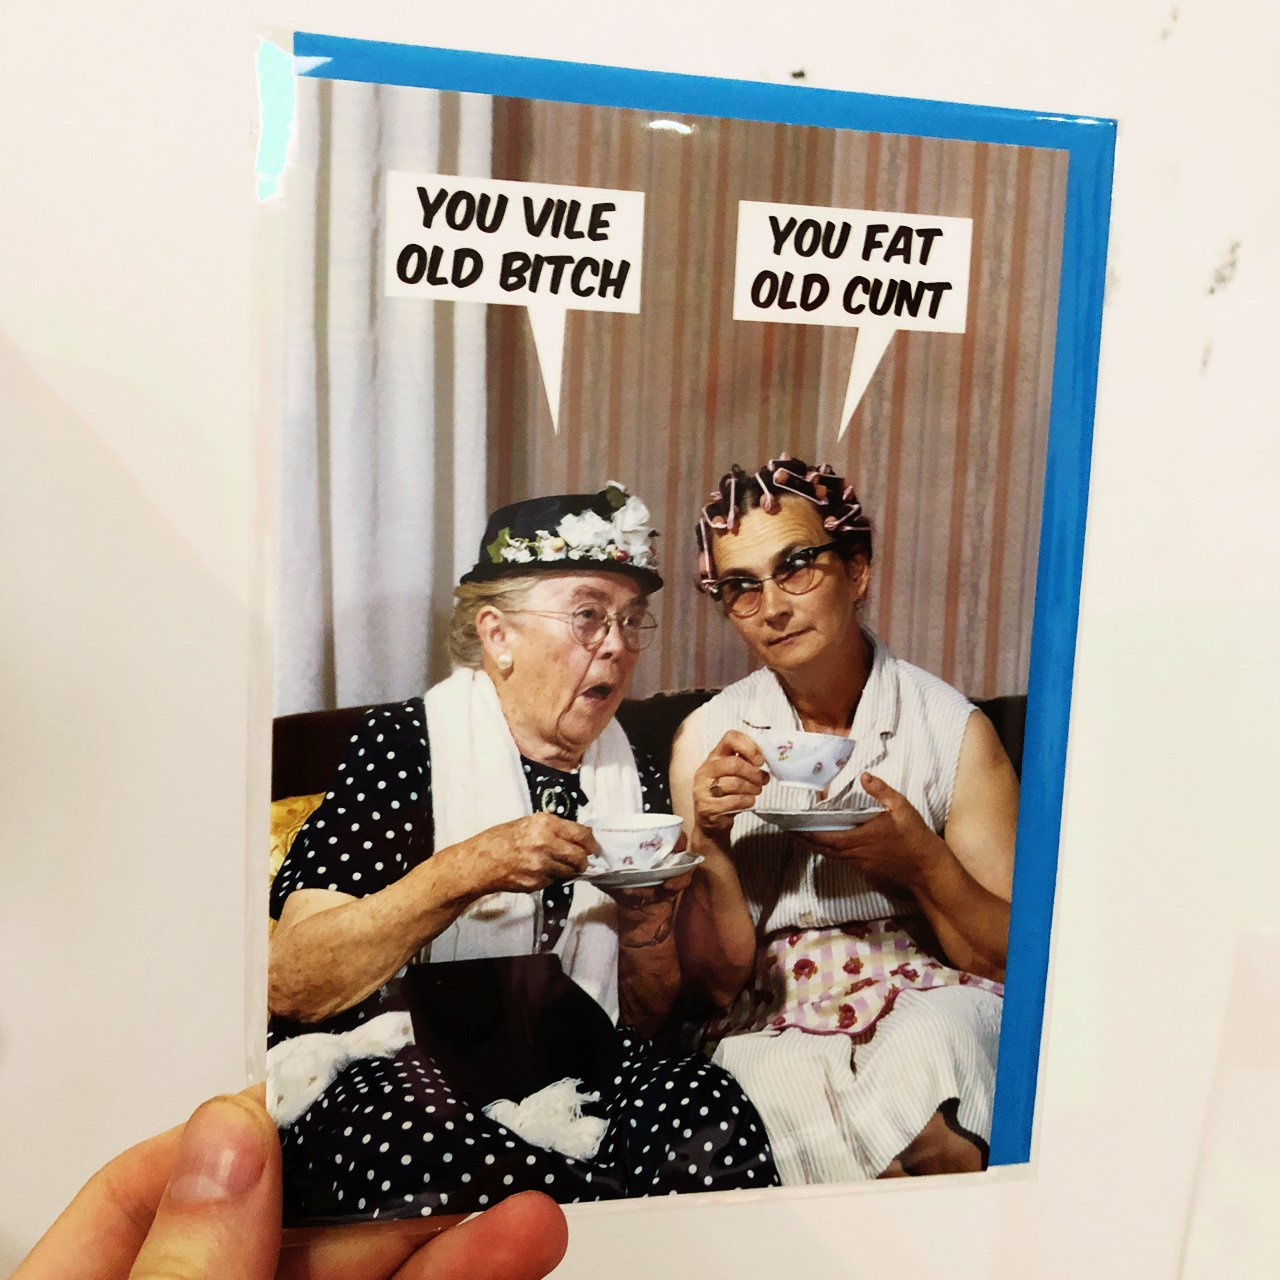 you vile bitch -you fat old cunt greetings card. blank for - depop